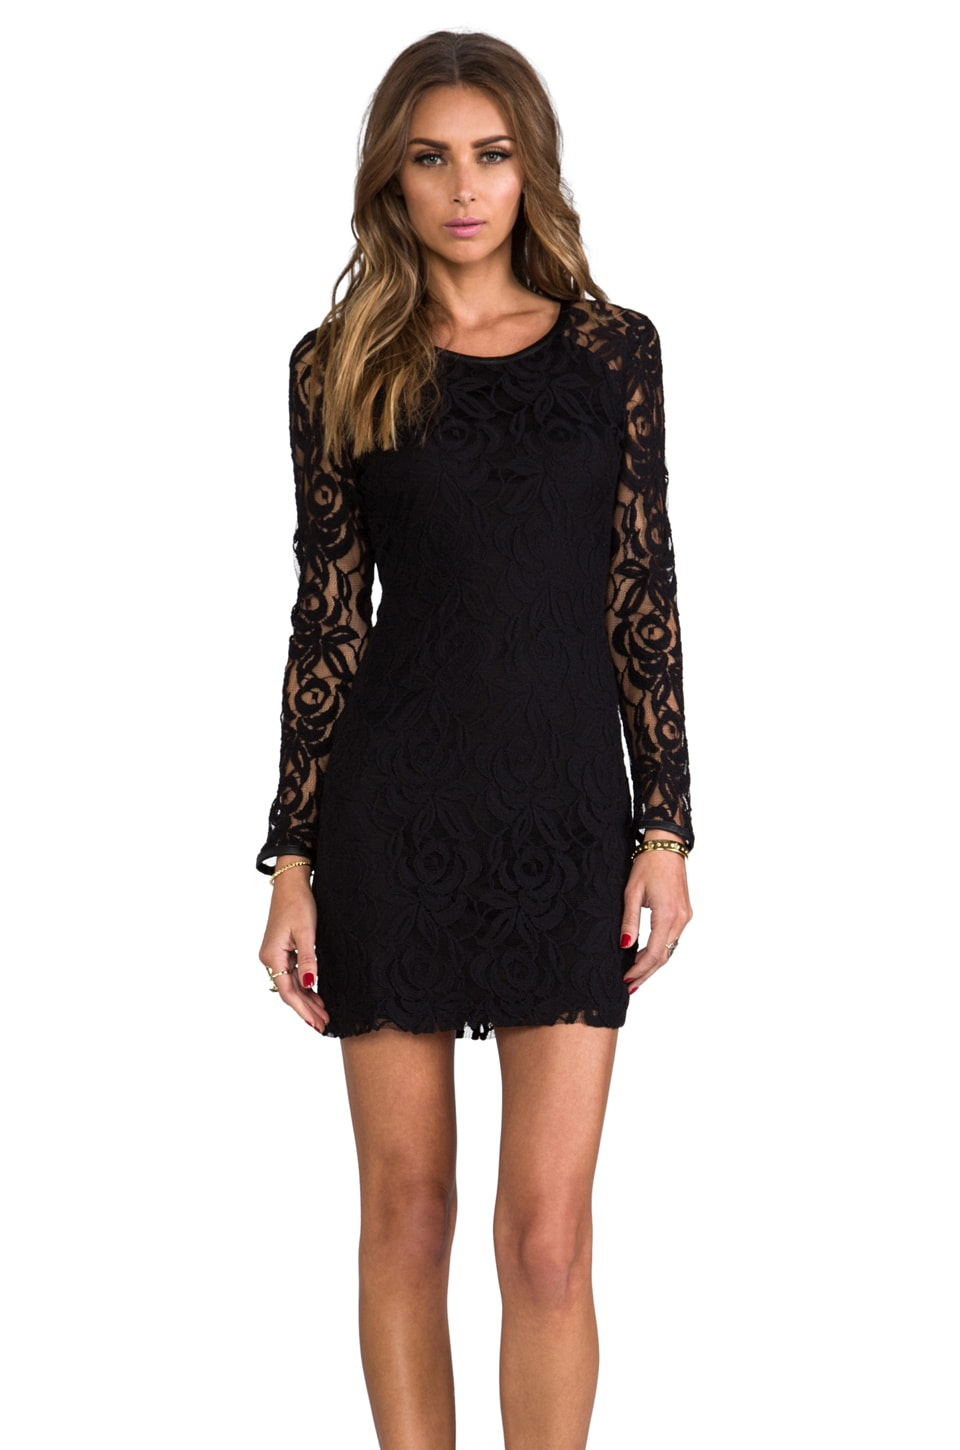 Central Park West Harlem Square Lace Dress in Black